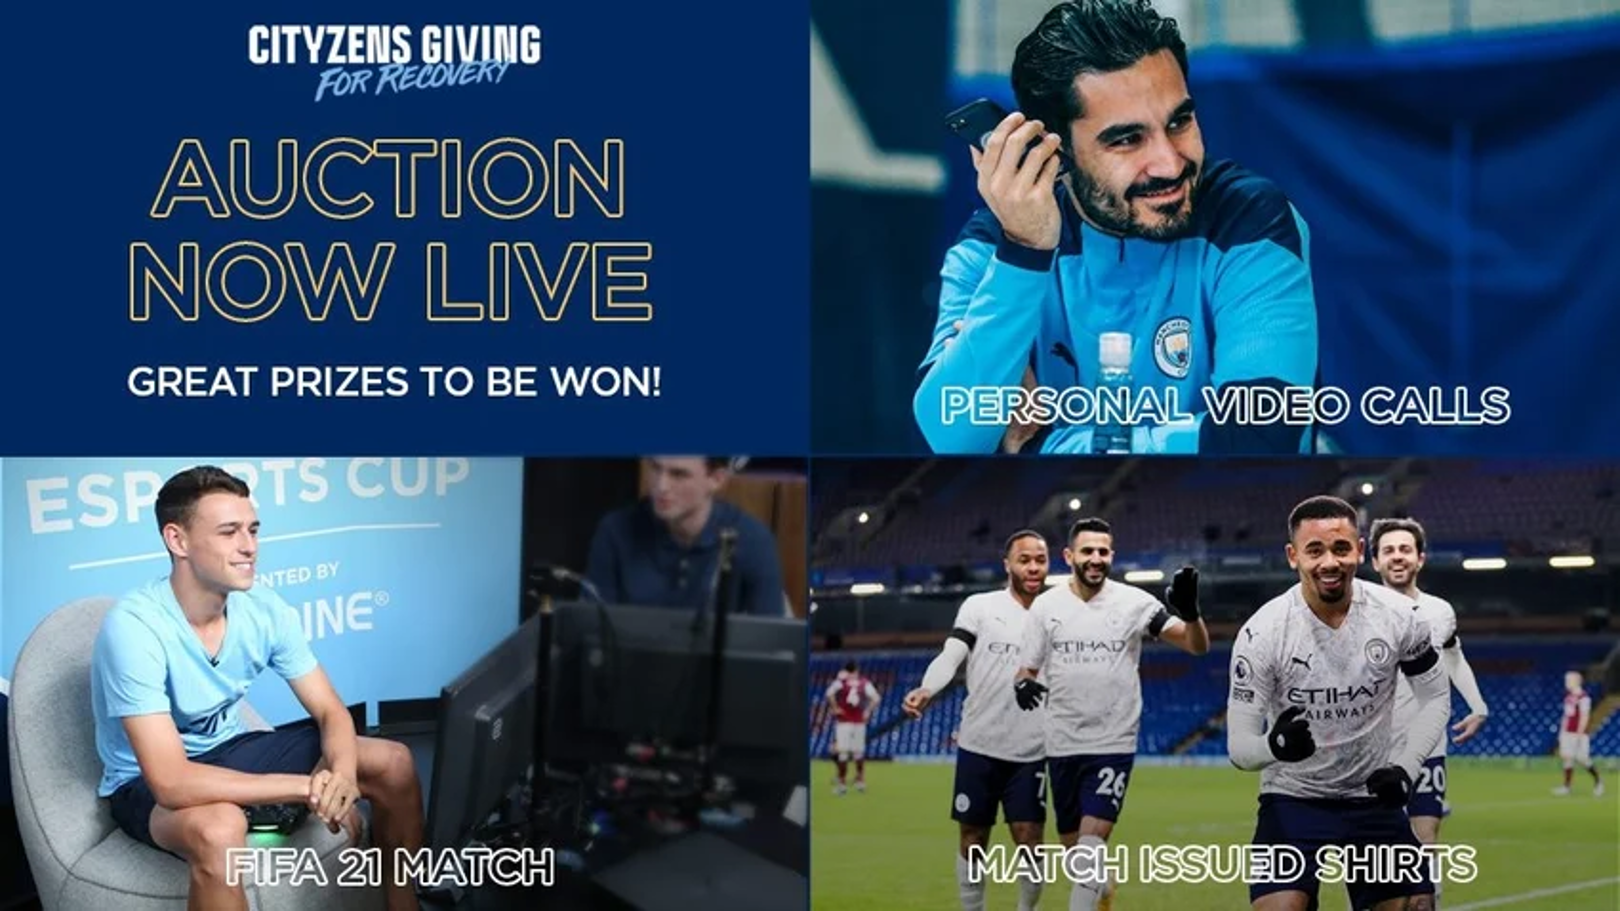 Cityzens Giving for Recovery Auction countdown begins